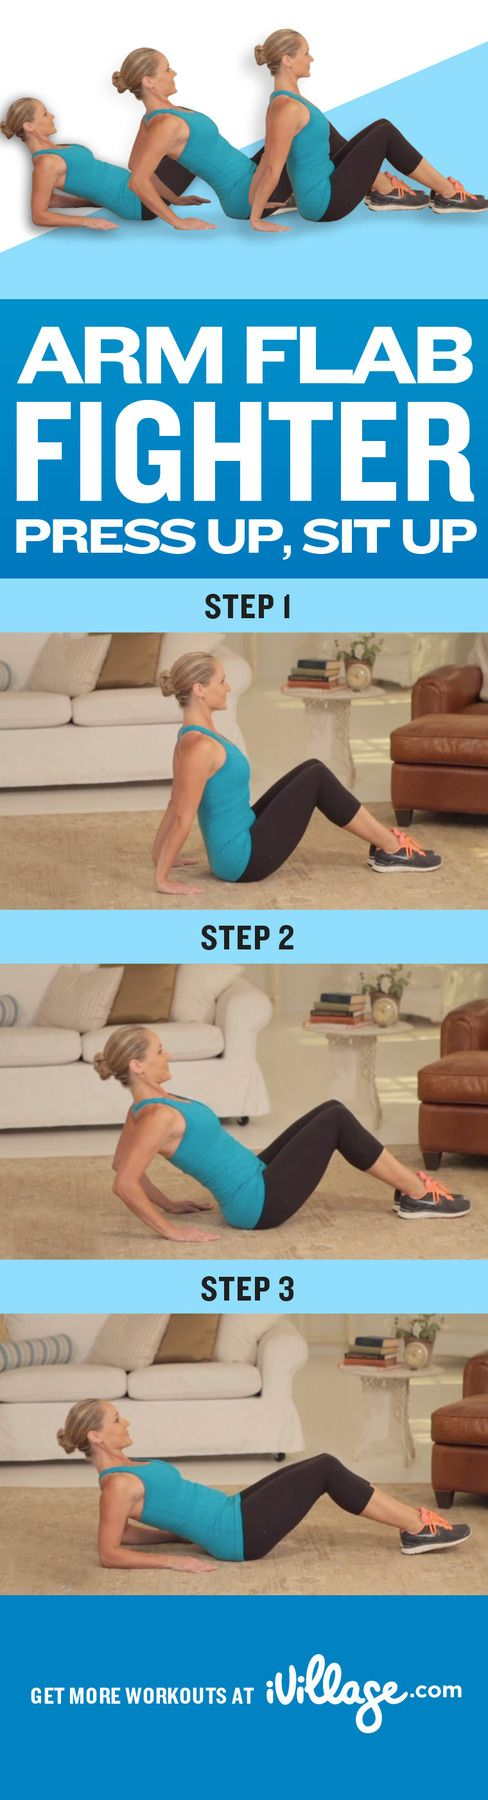 Simple exercises to tone your arms. #getbeachready